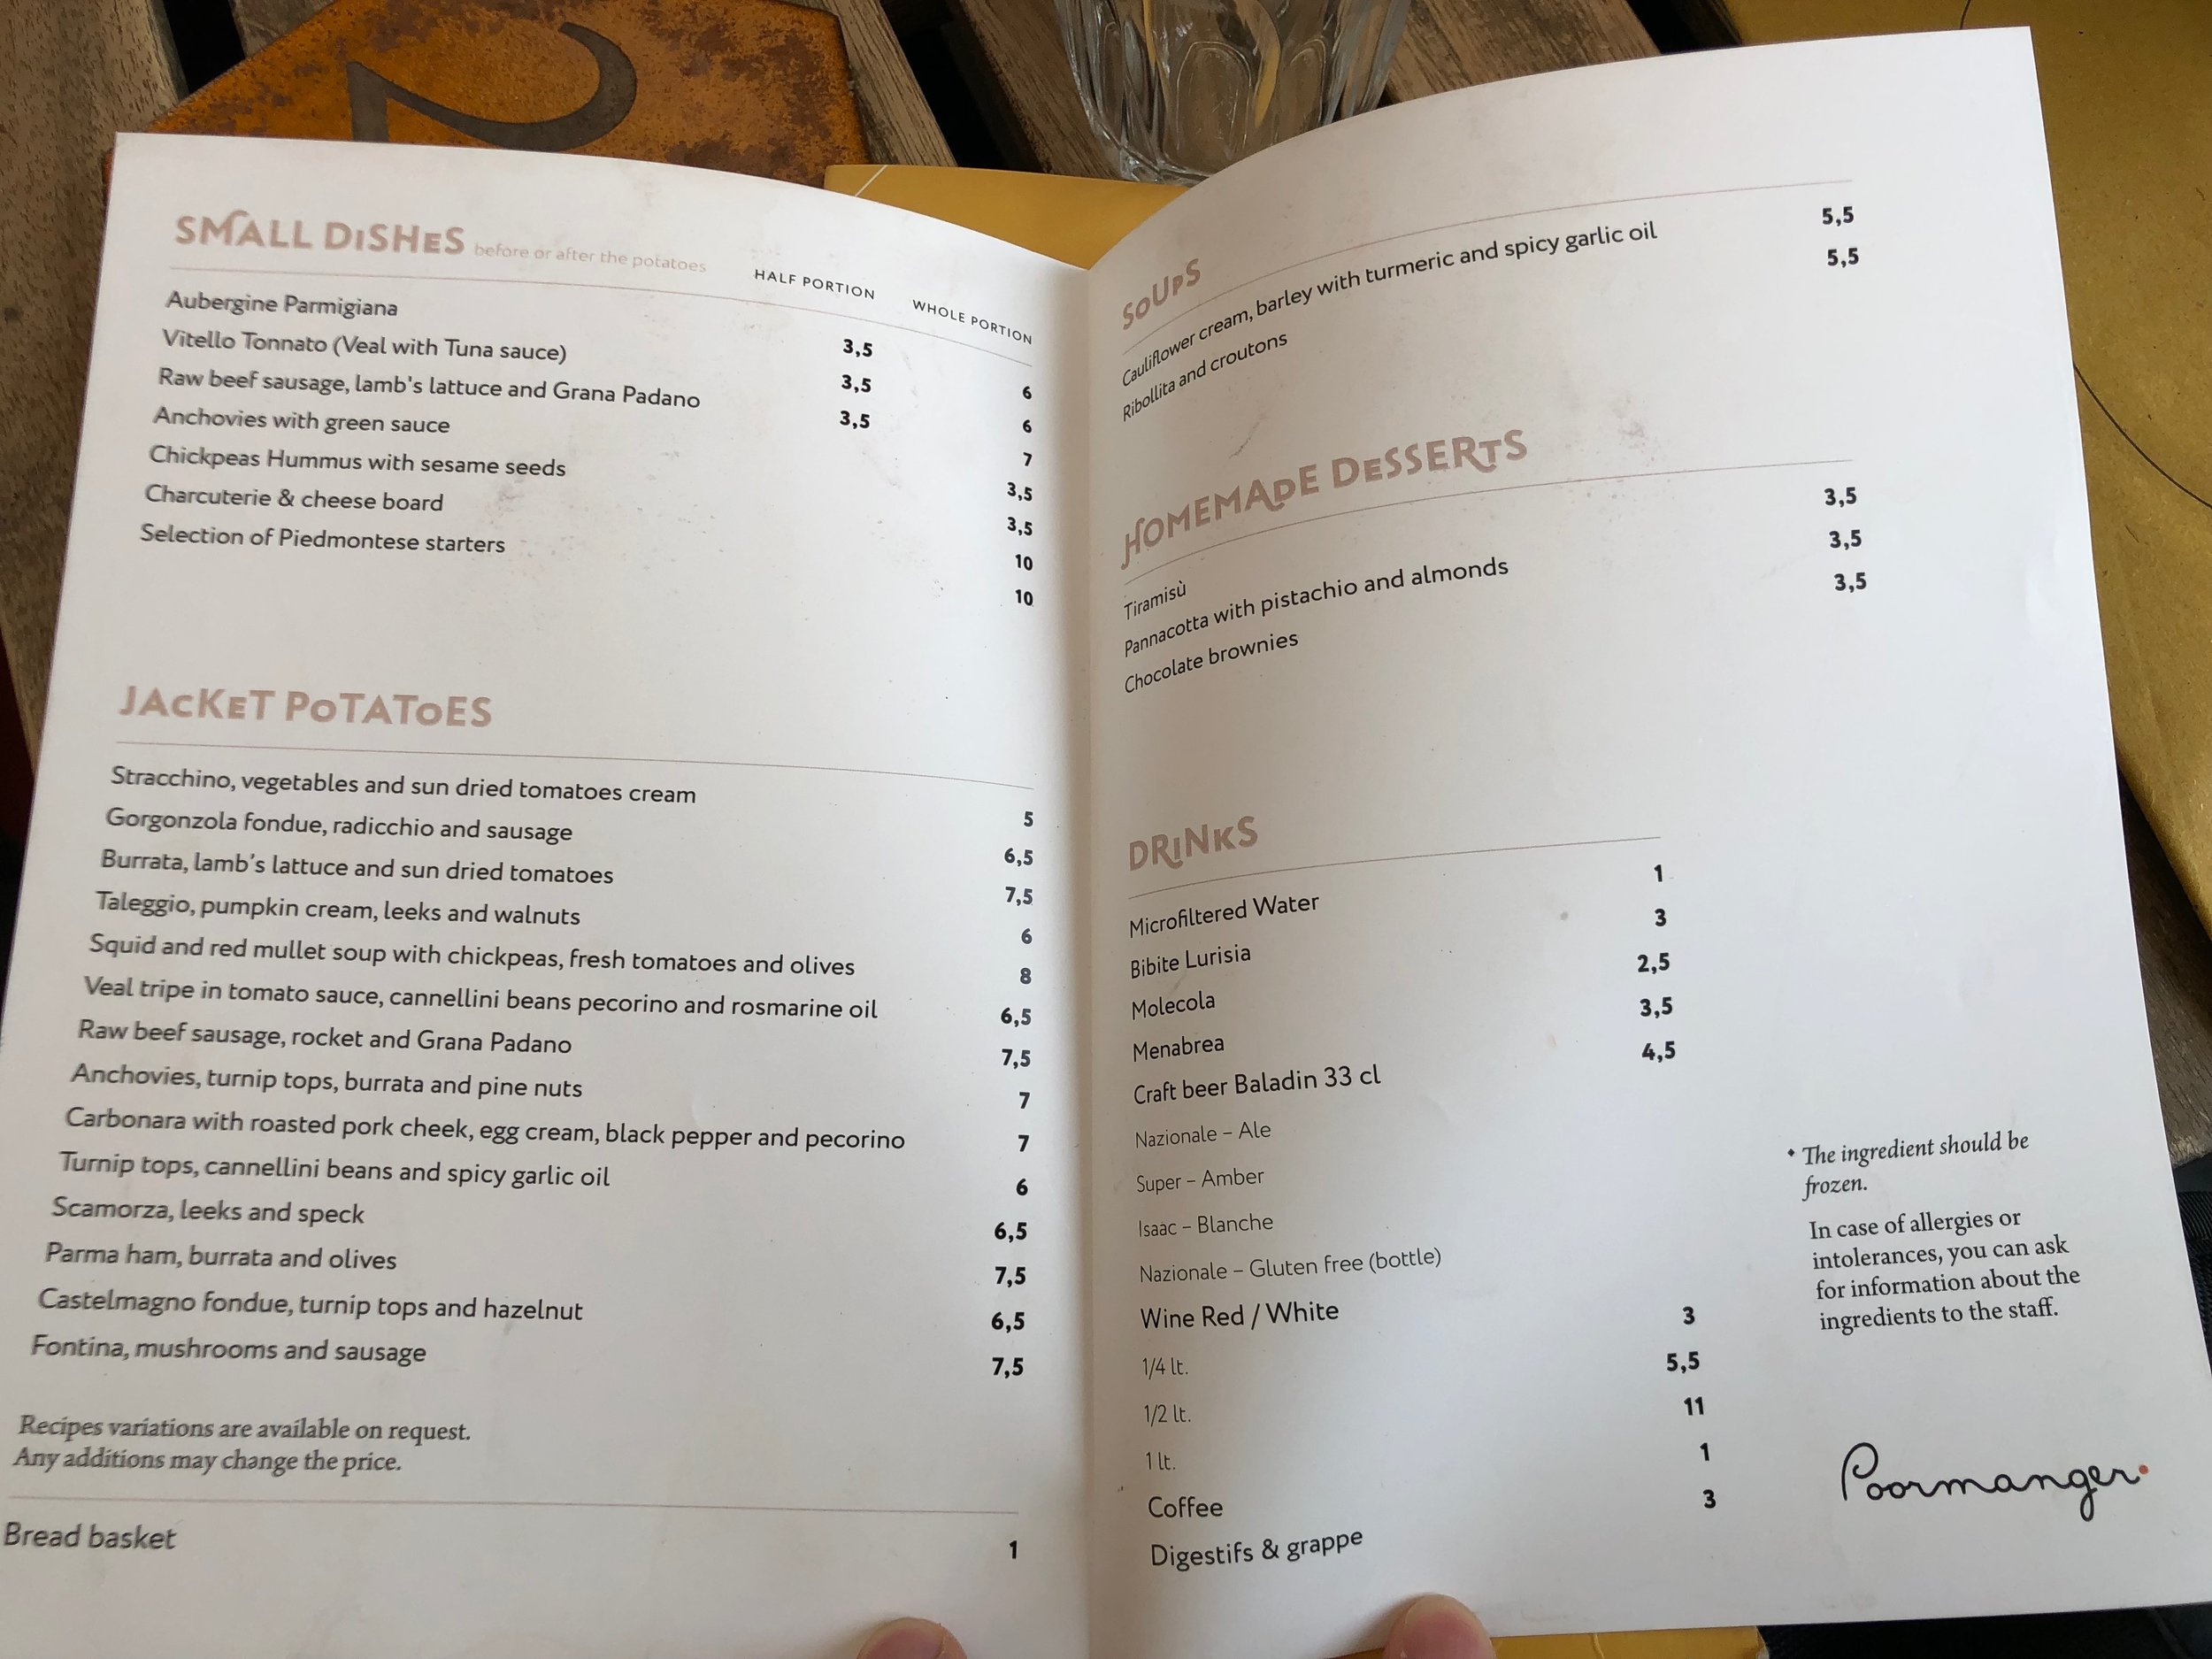 Poormanger menu English